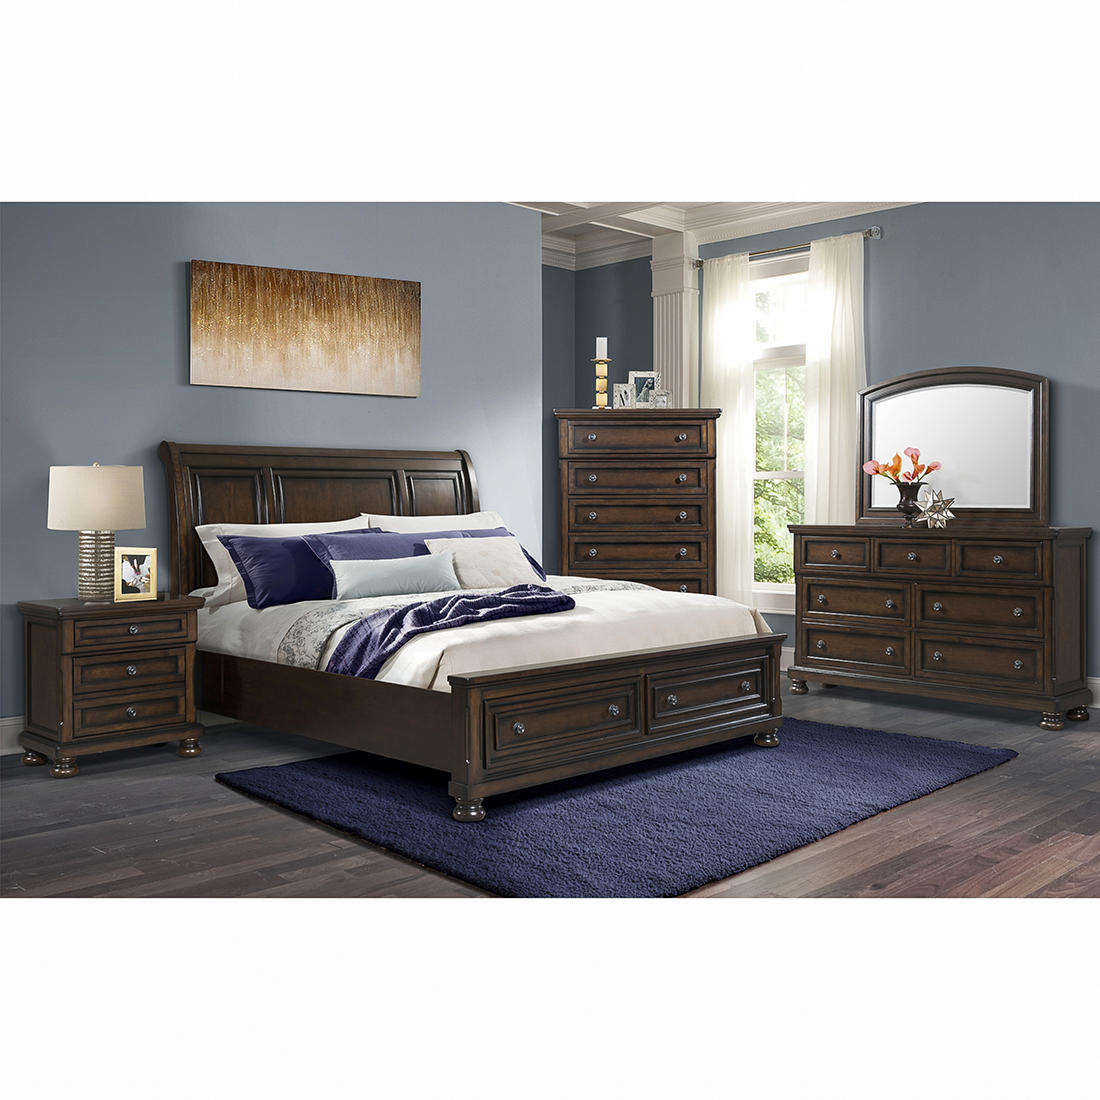 Westbrook 5-Pc. Queen Size Storage Bedroom Set - Cherry